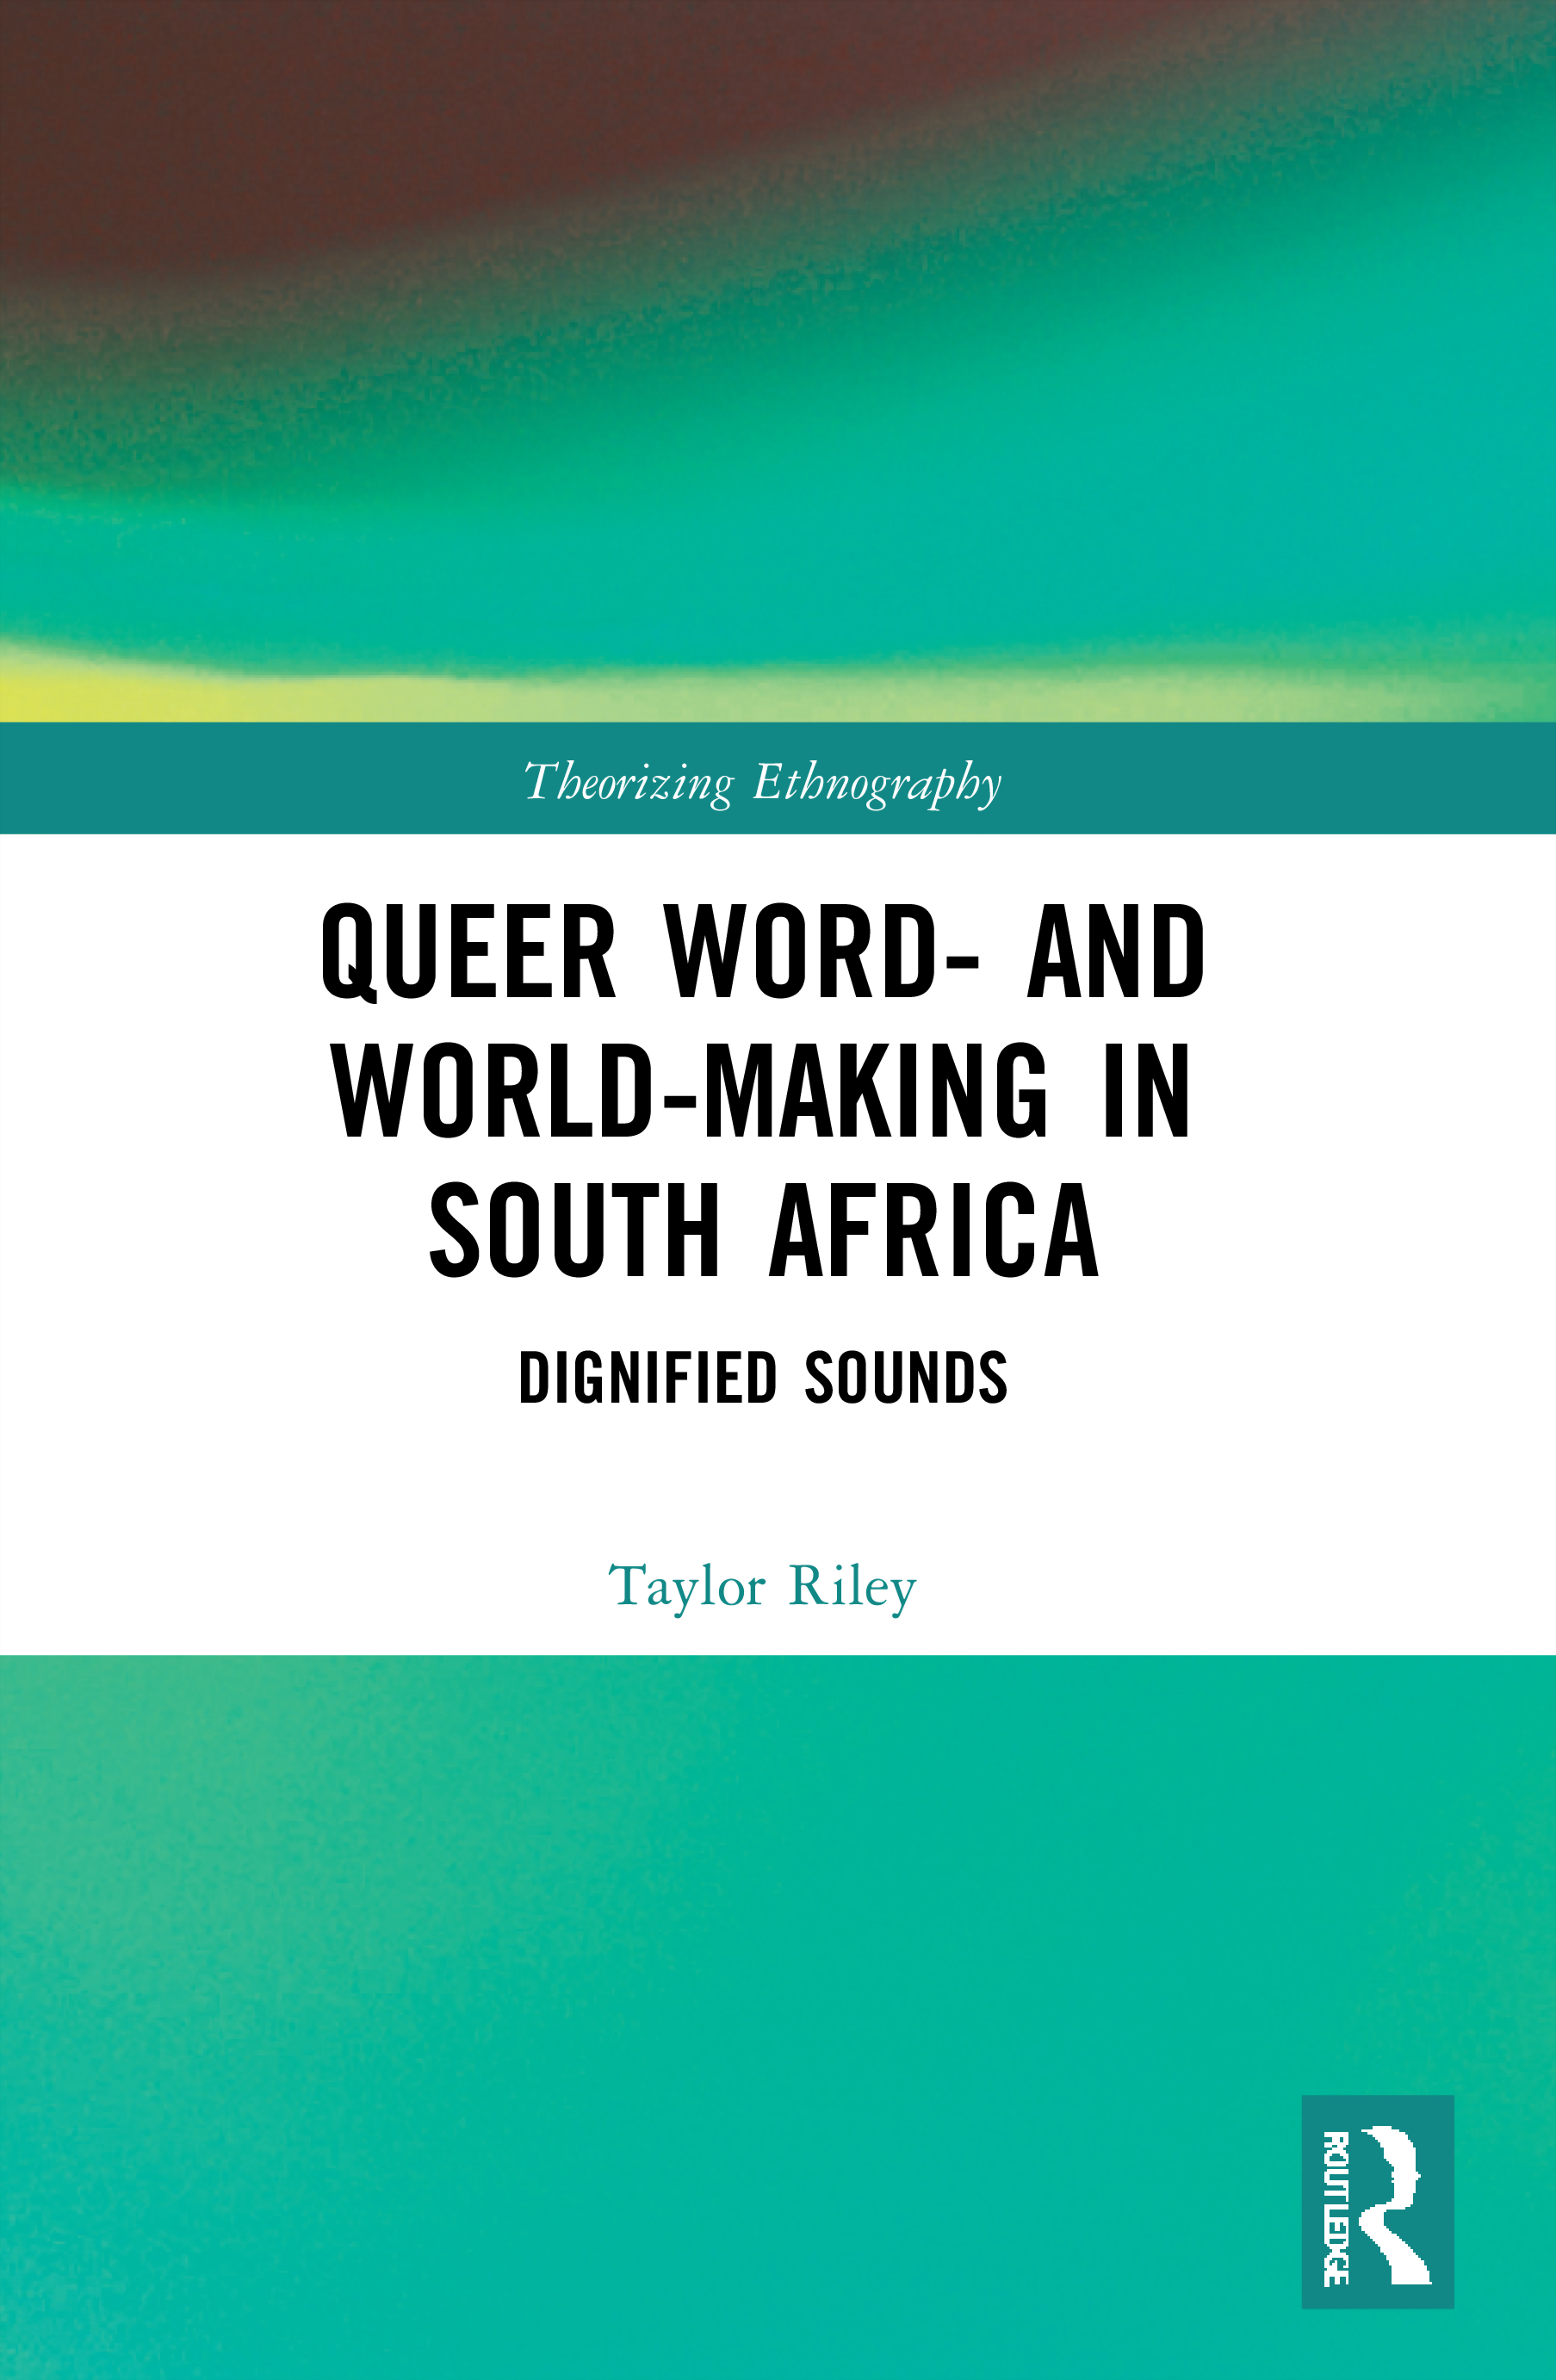 Queer Word- and World-Making in South Africa